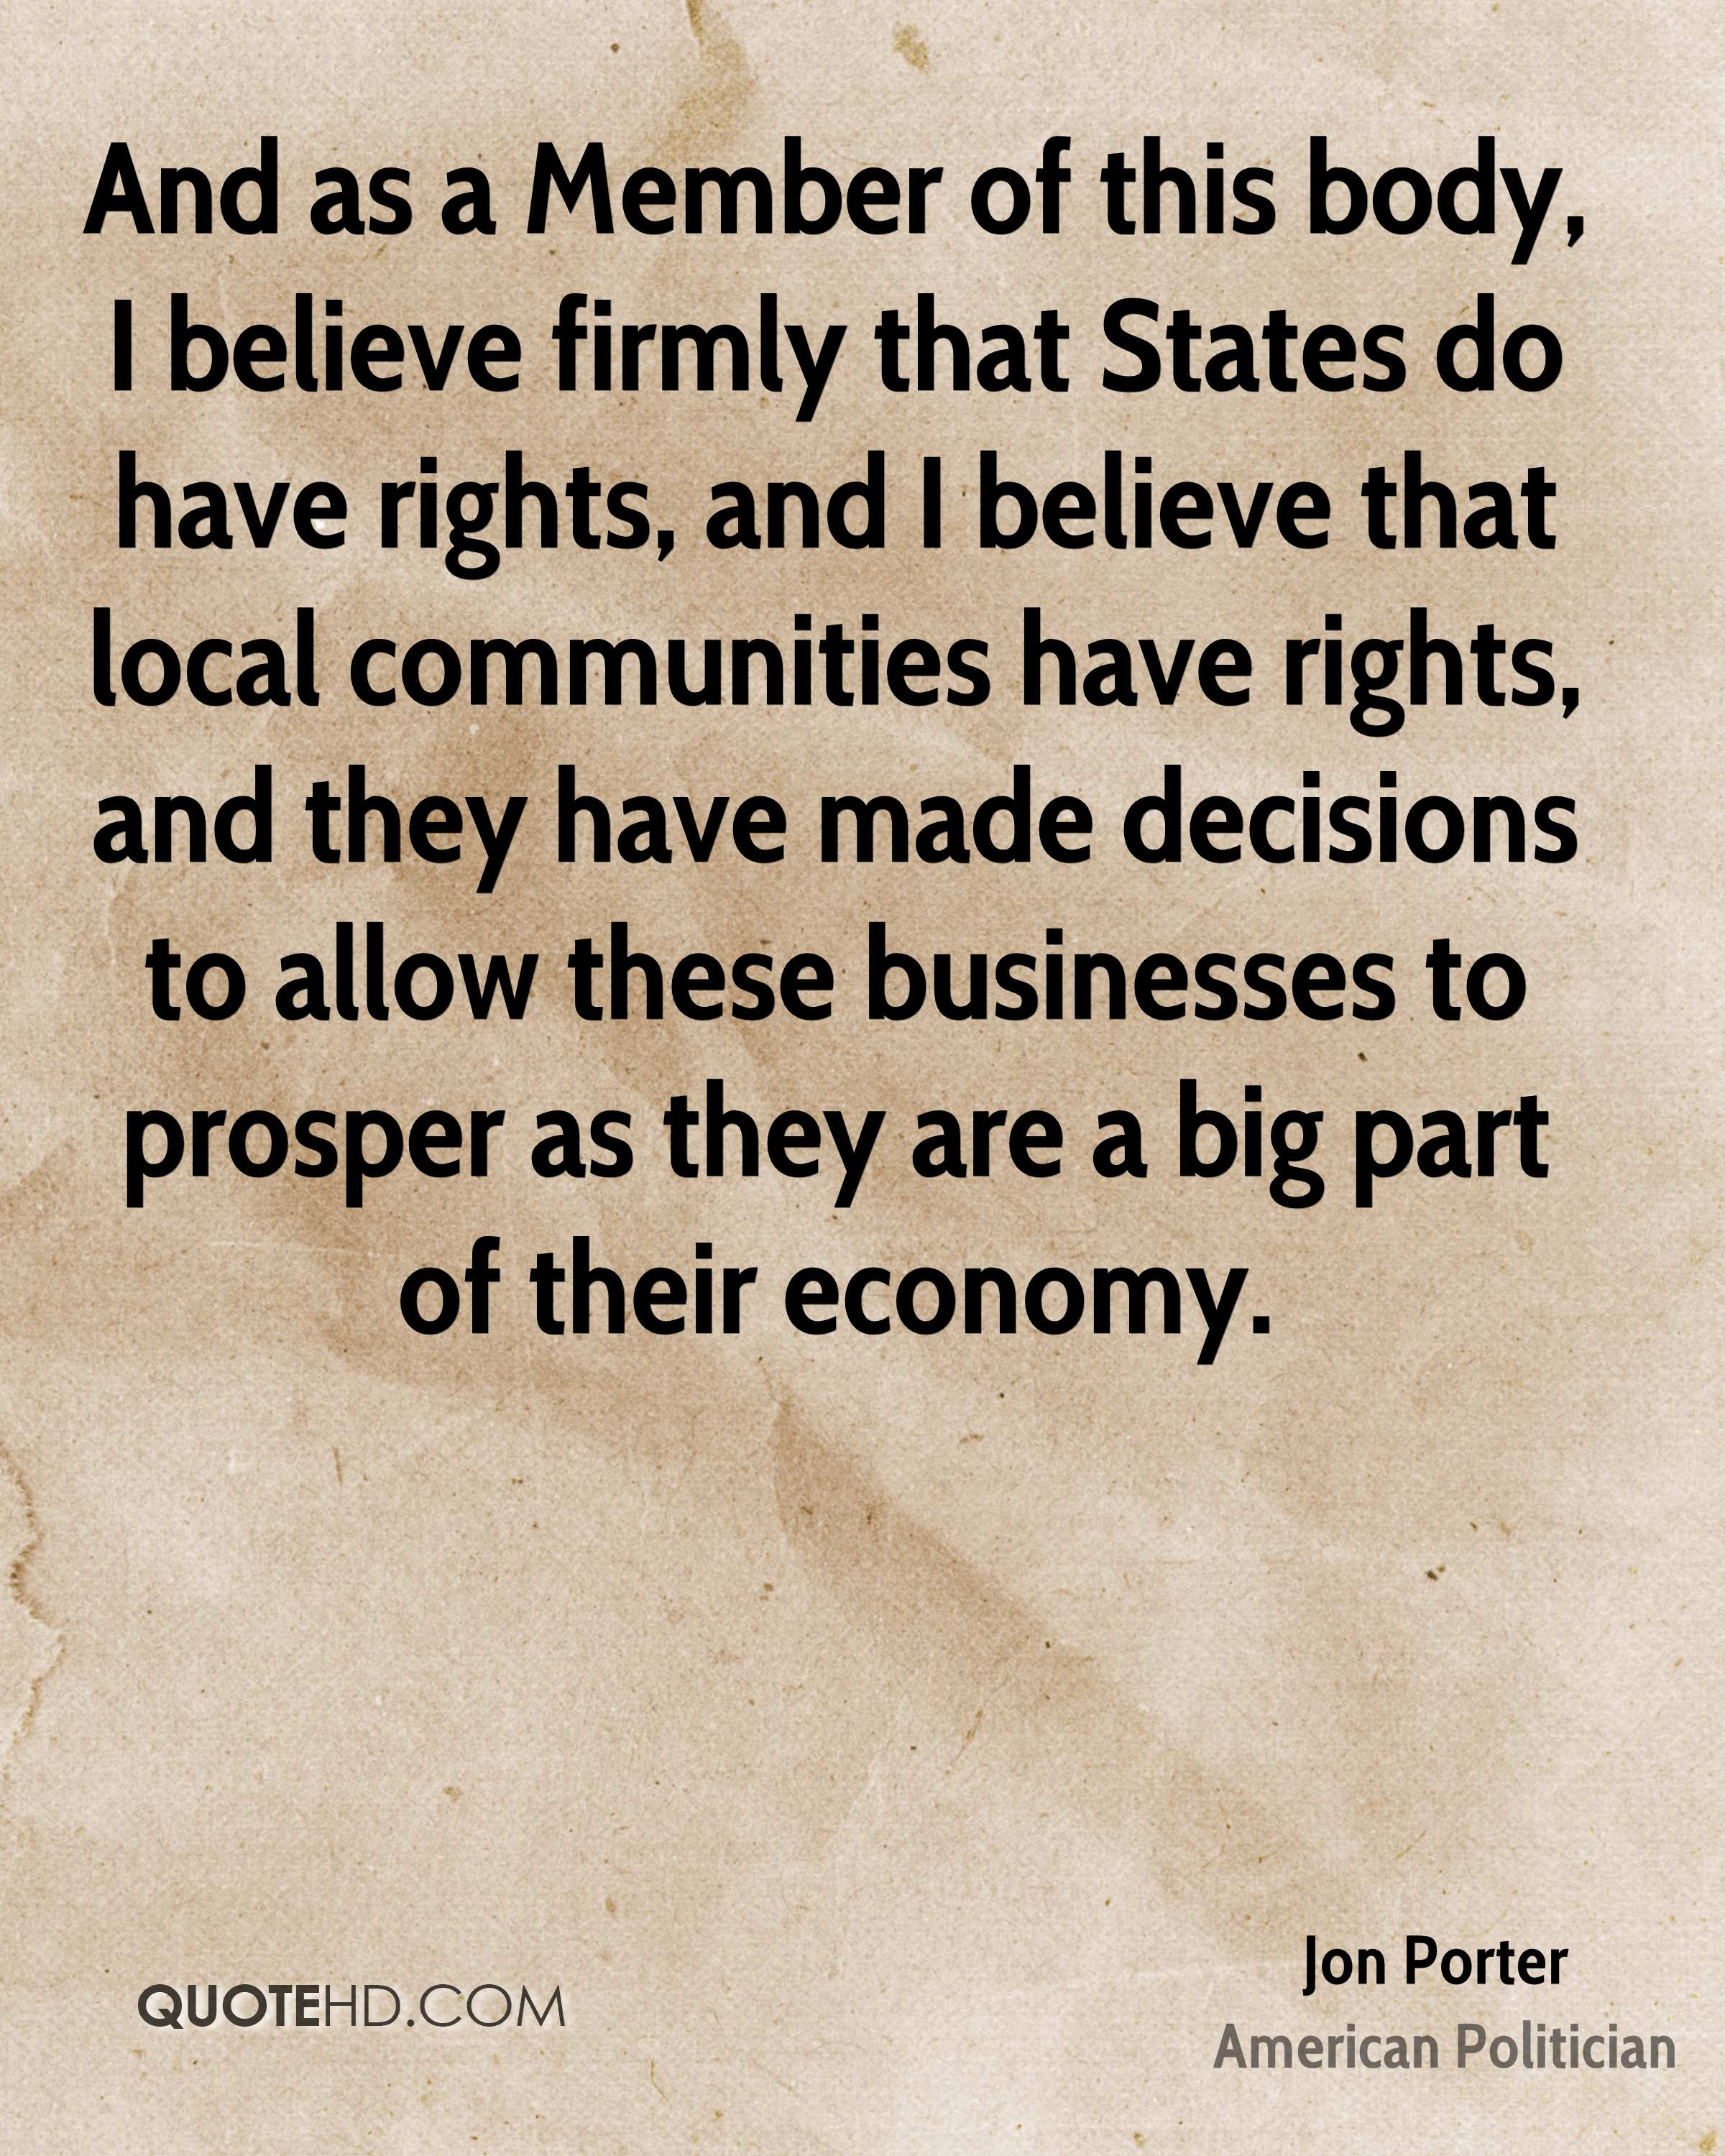 And as a Member of this body, I believe firmly that States do have rights, and I believe that local communities have rights, and they have made decisions to allow these businesses to prosper as they are a big part of their economy.